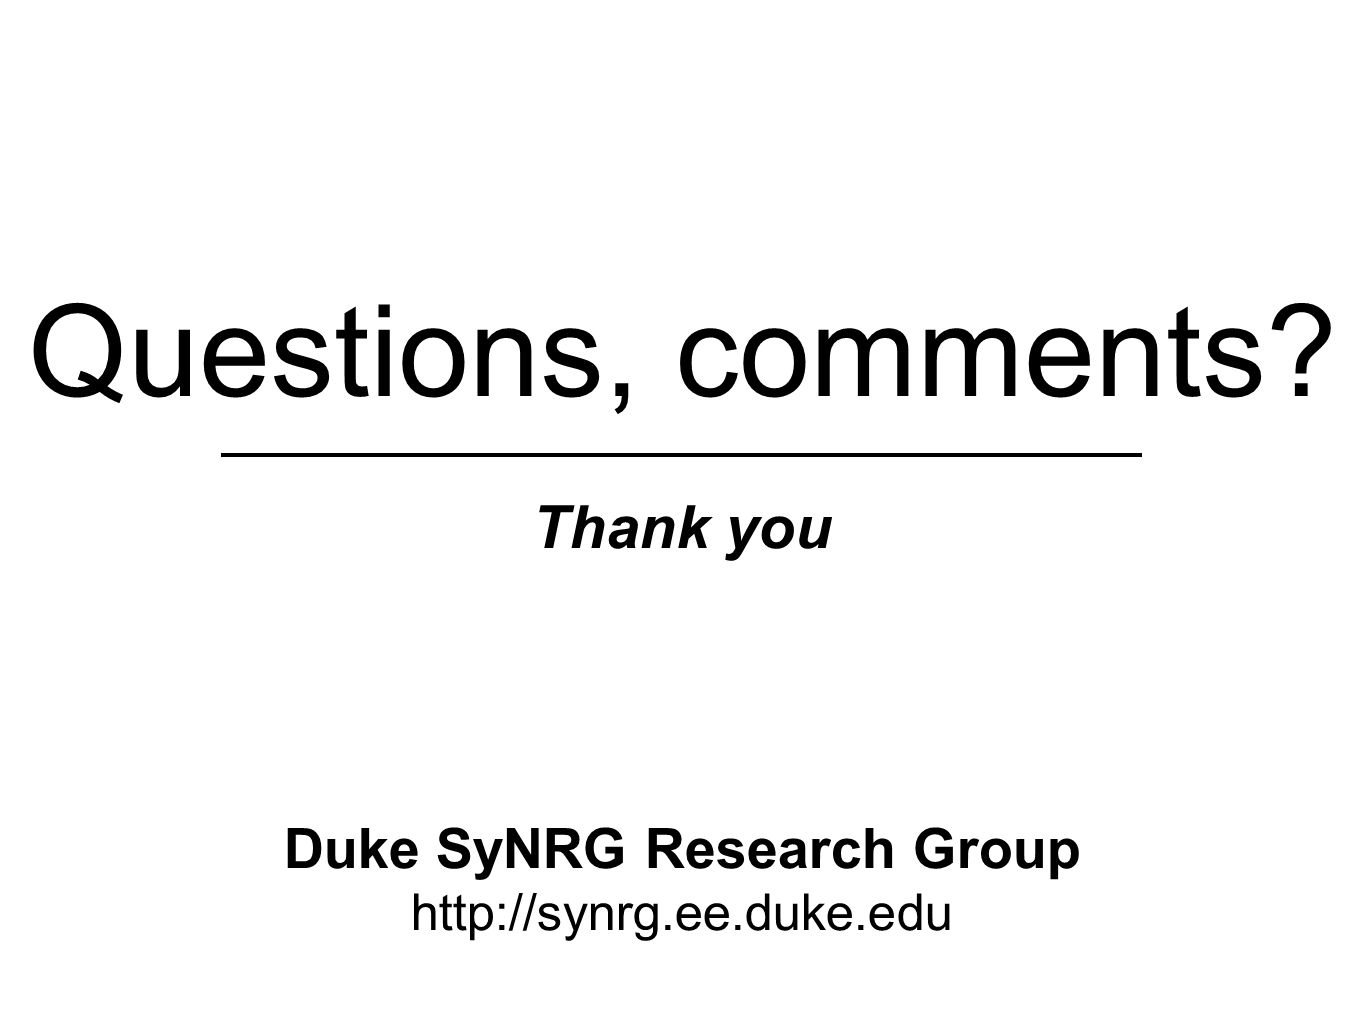 Questions, comments Thank you Duke SyNRG Research Group http://synrg.ee.duke.edu